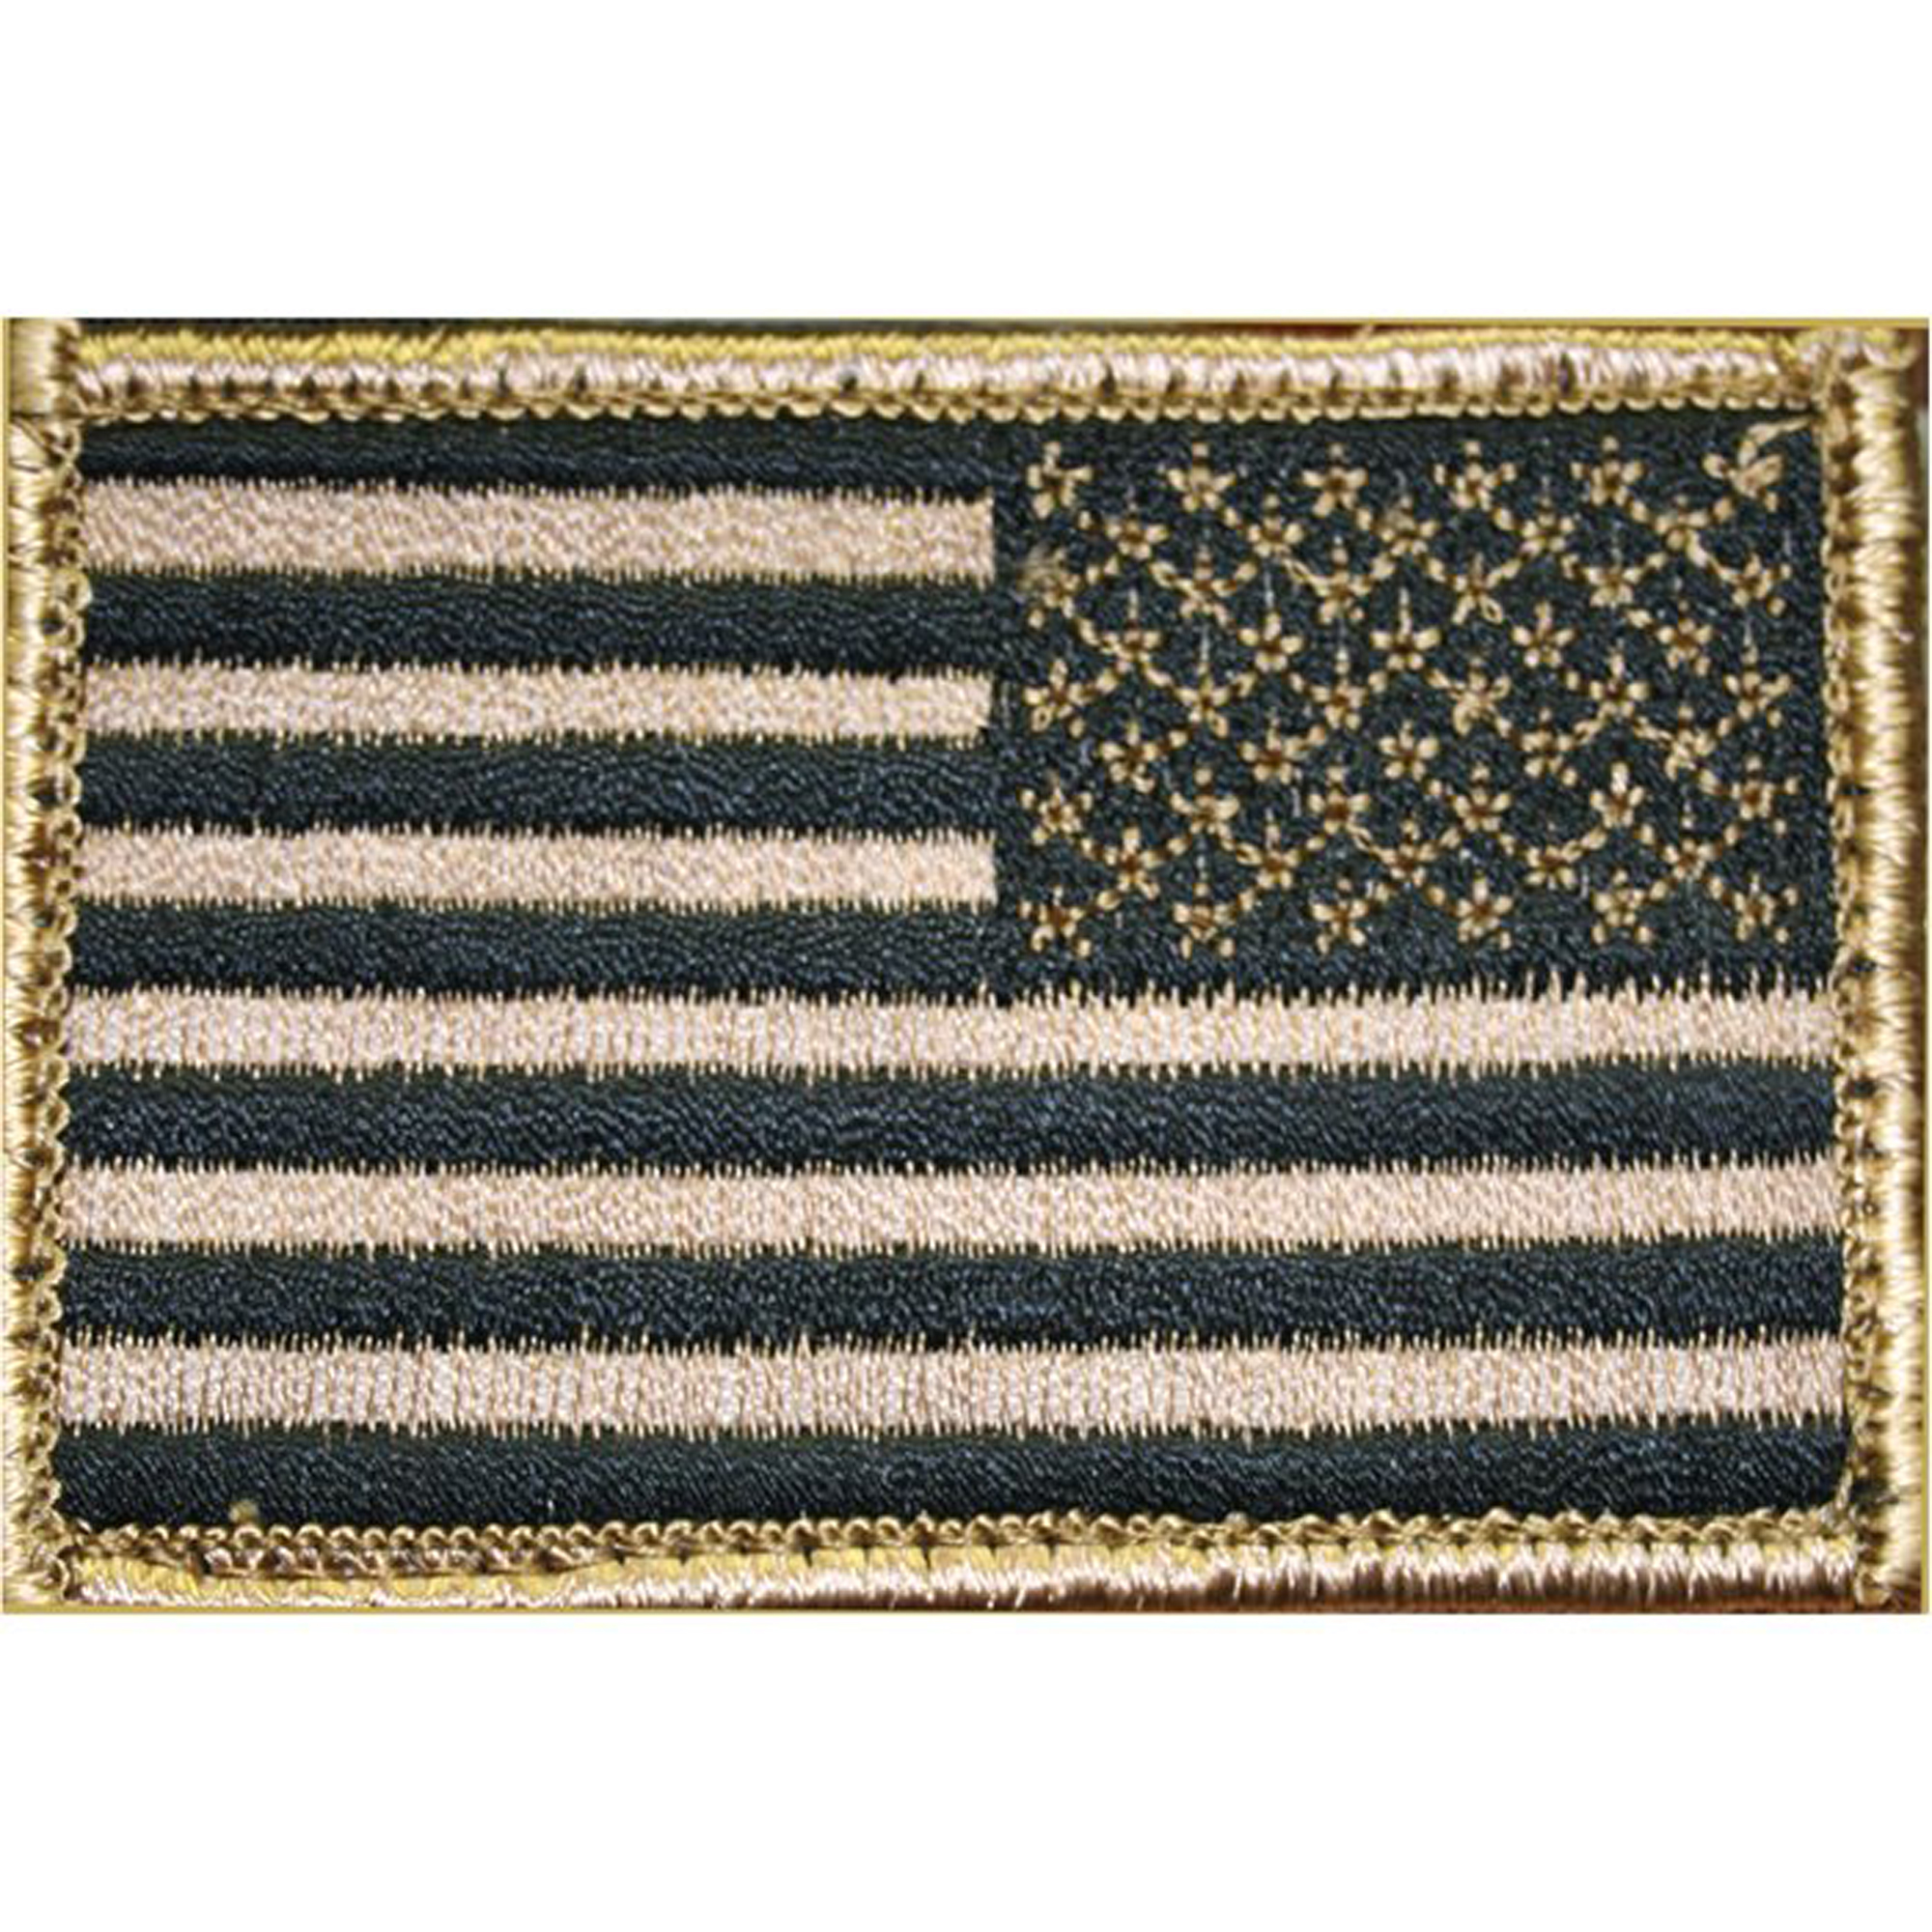 This USA flag identification patch can be attached to pouches and garments. It offers hook & loop attachment with a loop panel that can be sewn onto gear and clothing.